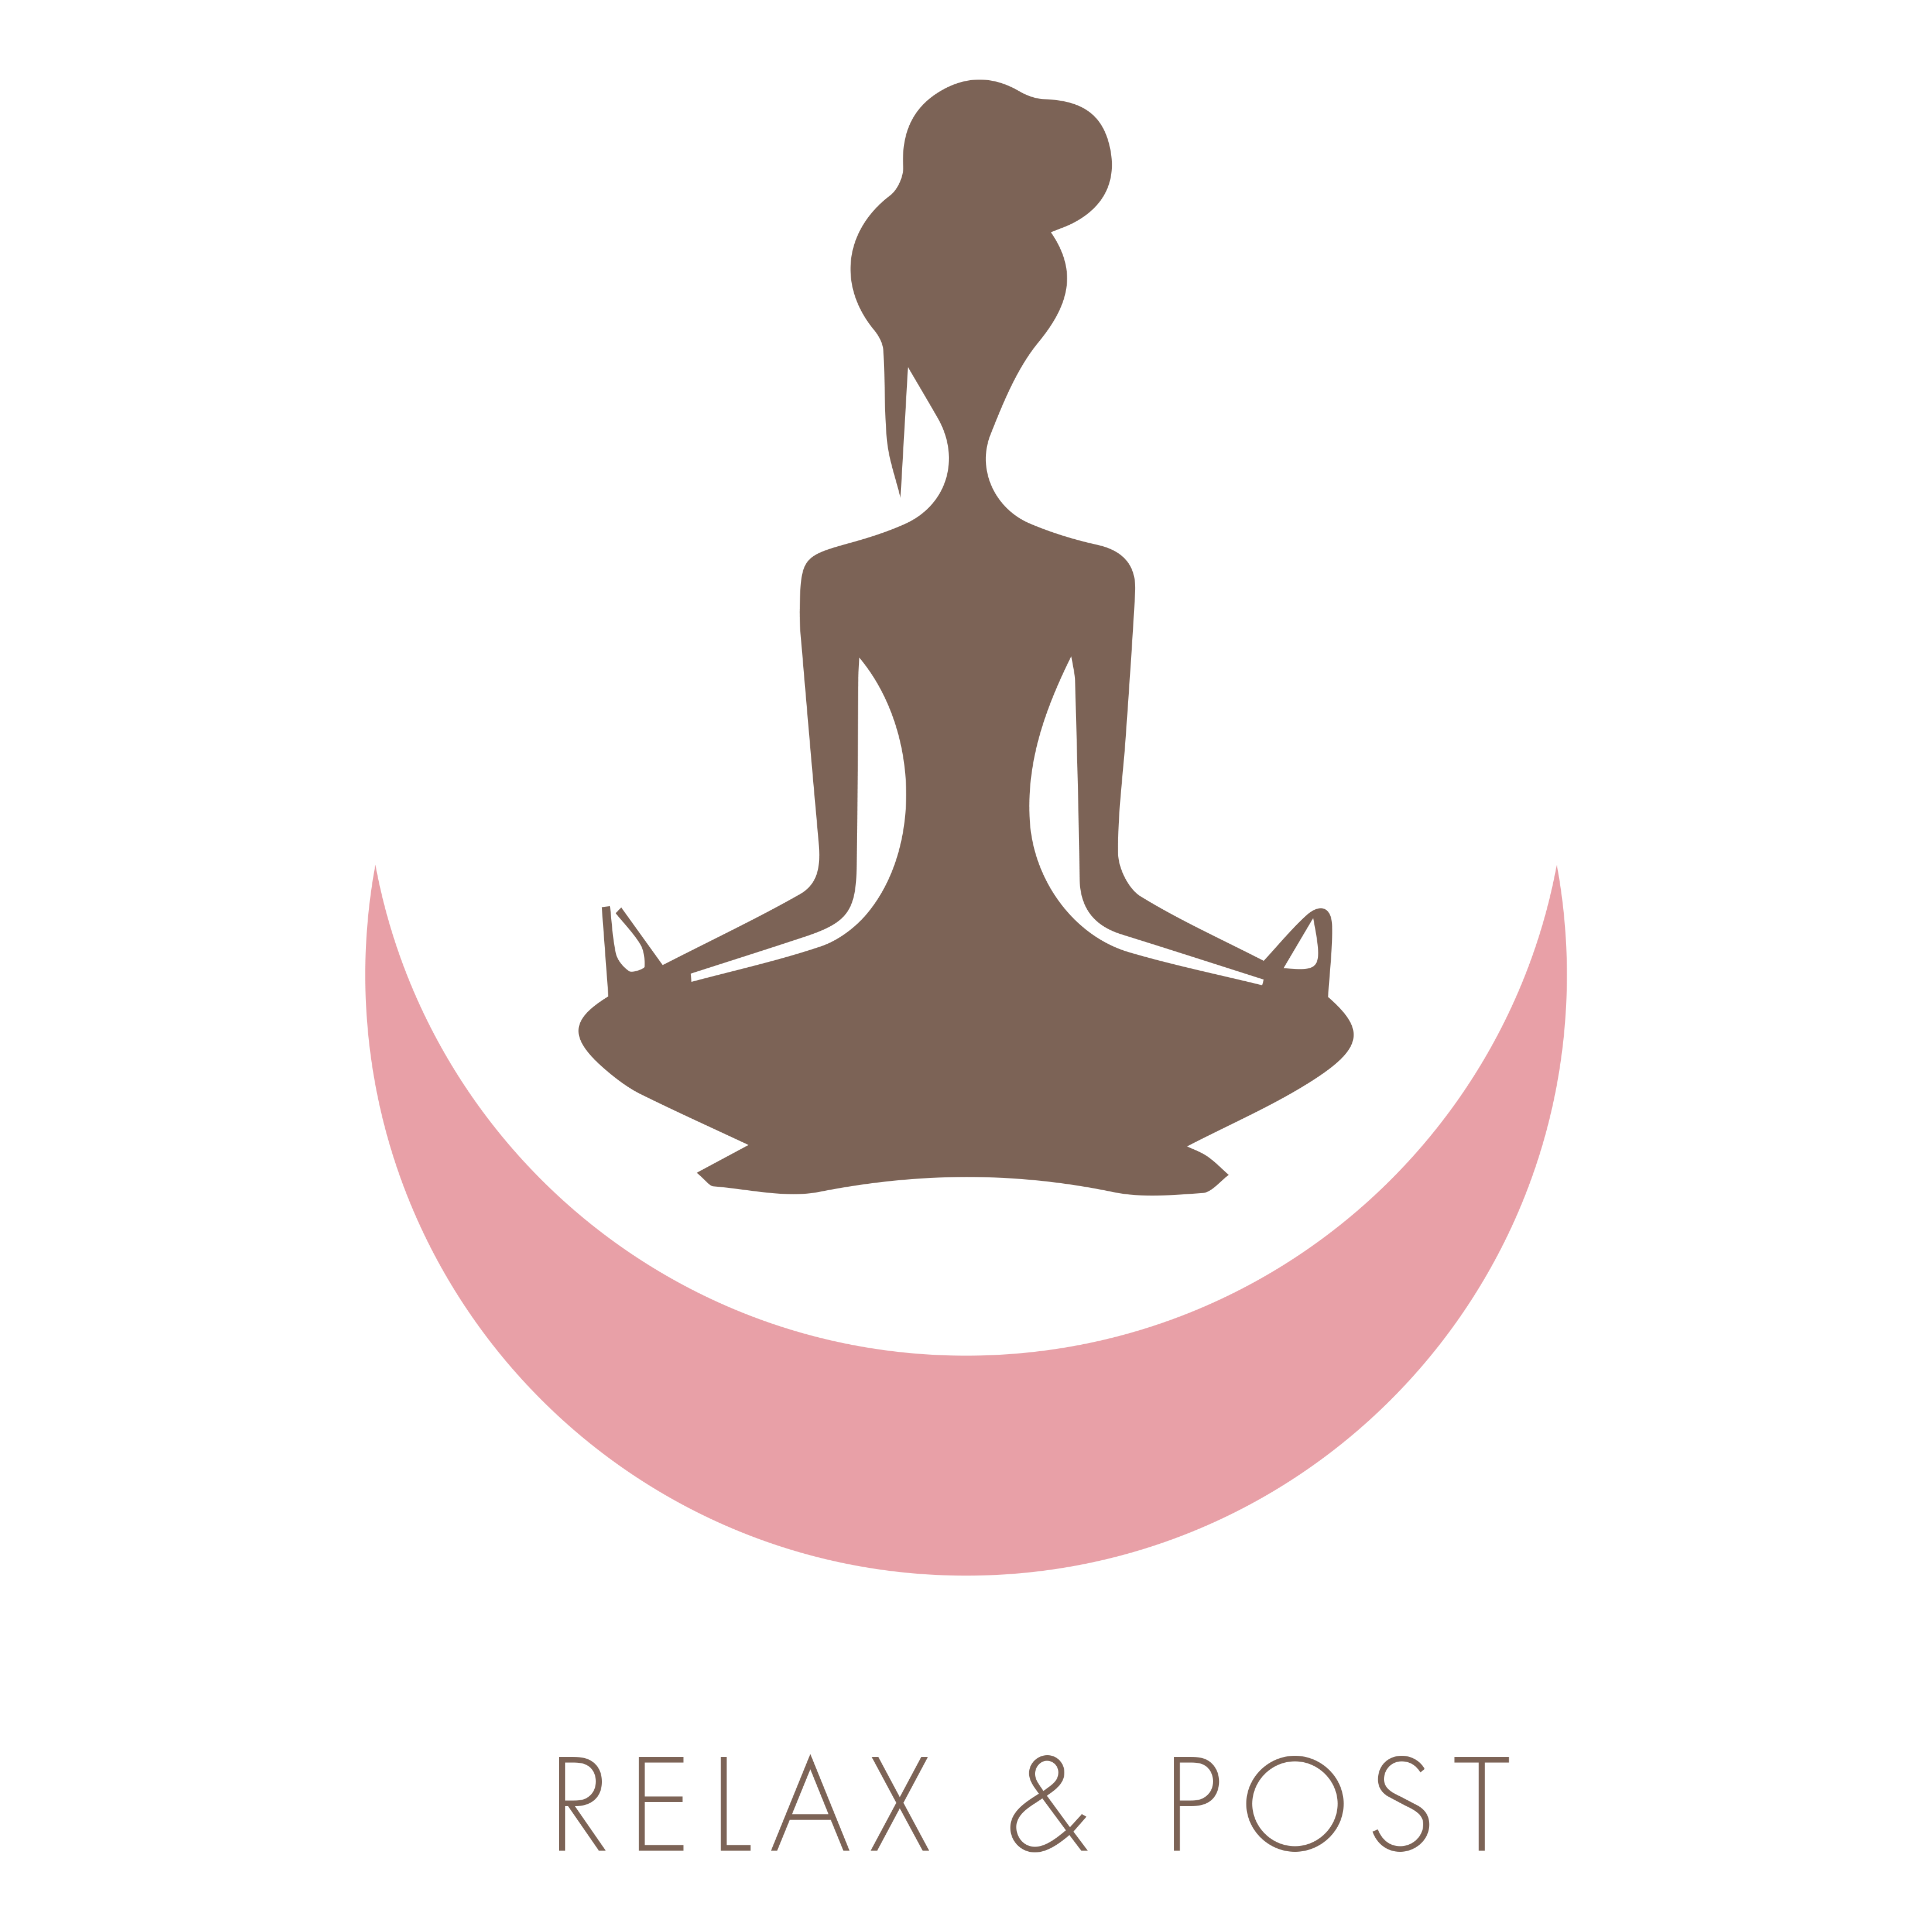 Relax and Post